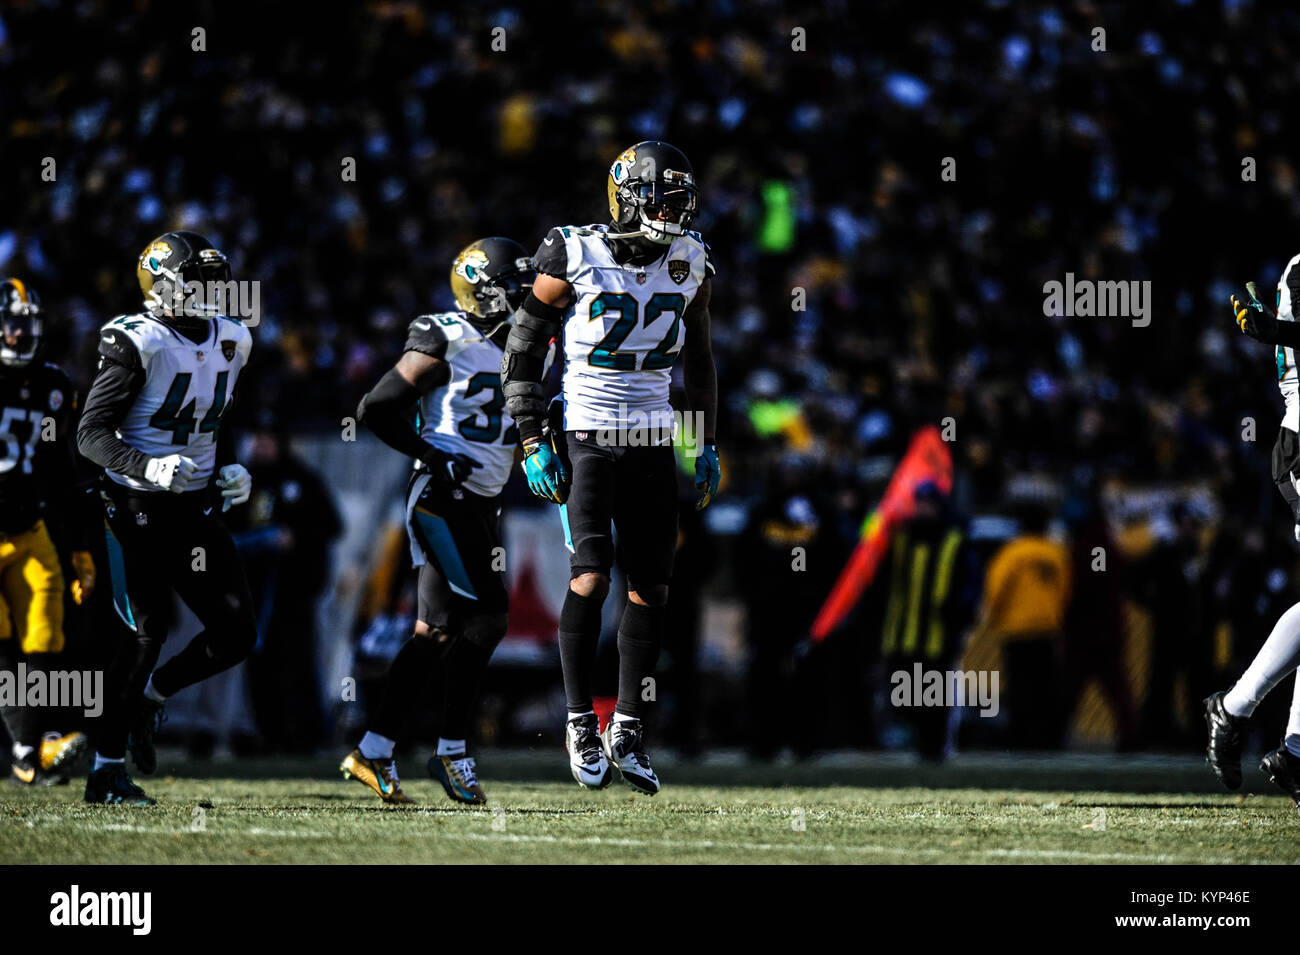 Pittsburgh, PA, USA. 14th Jan, 2018. Aaron Colvin #22 during the Jacksonville Jaguars vs Pittsburgh Steelers game - Stock Image